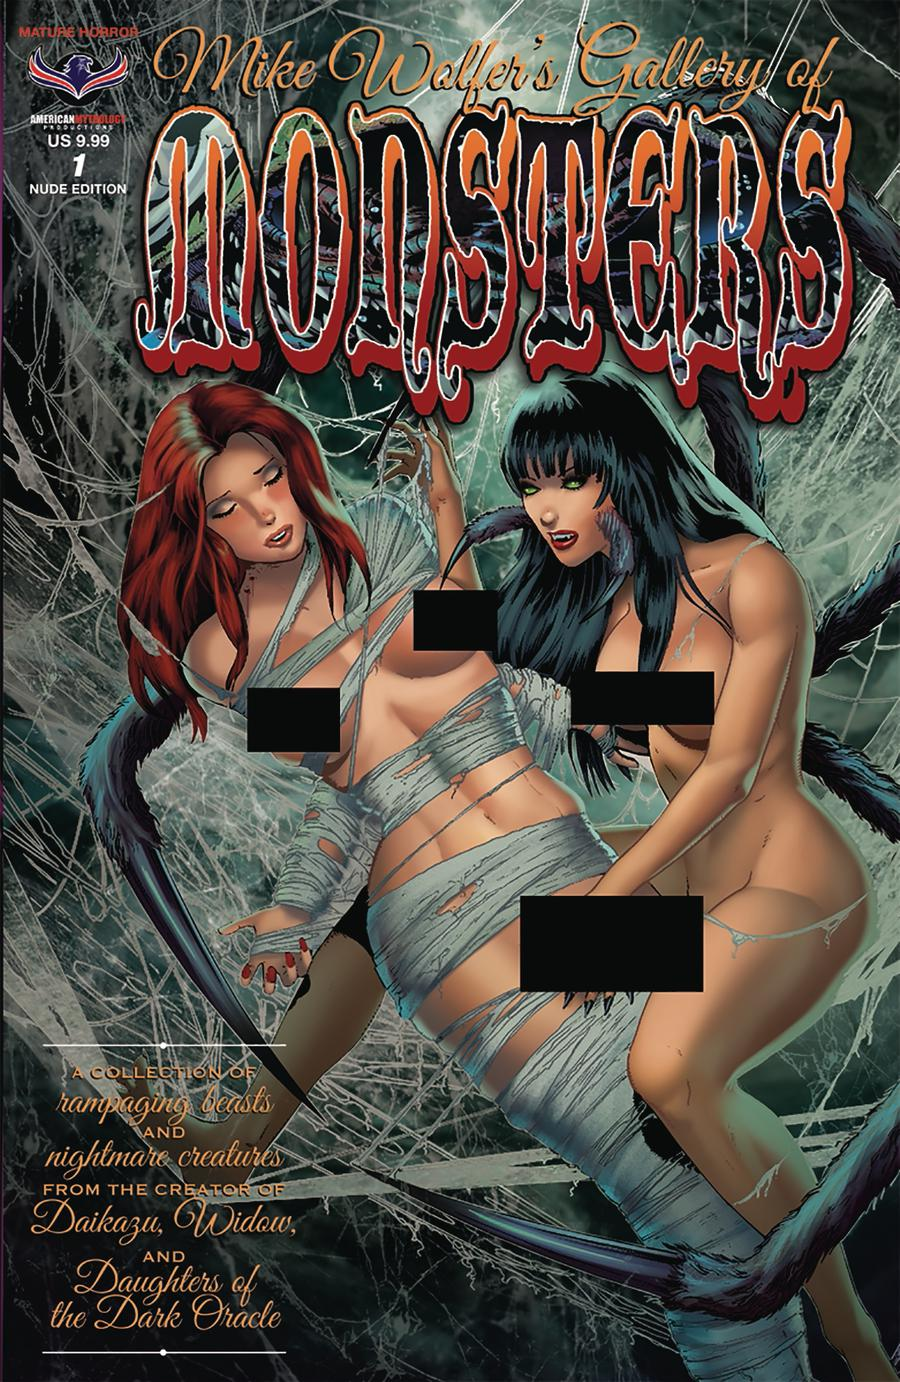 Mike Wolfers Gallery Of Monsters #1 Cover B Variant Mike Wolfer Nude Cover